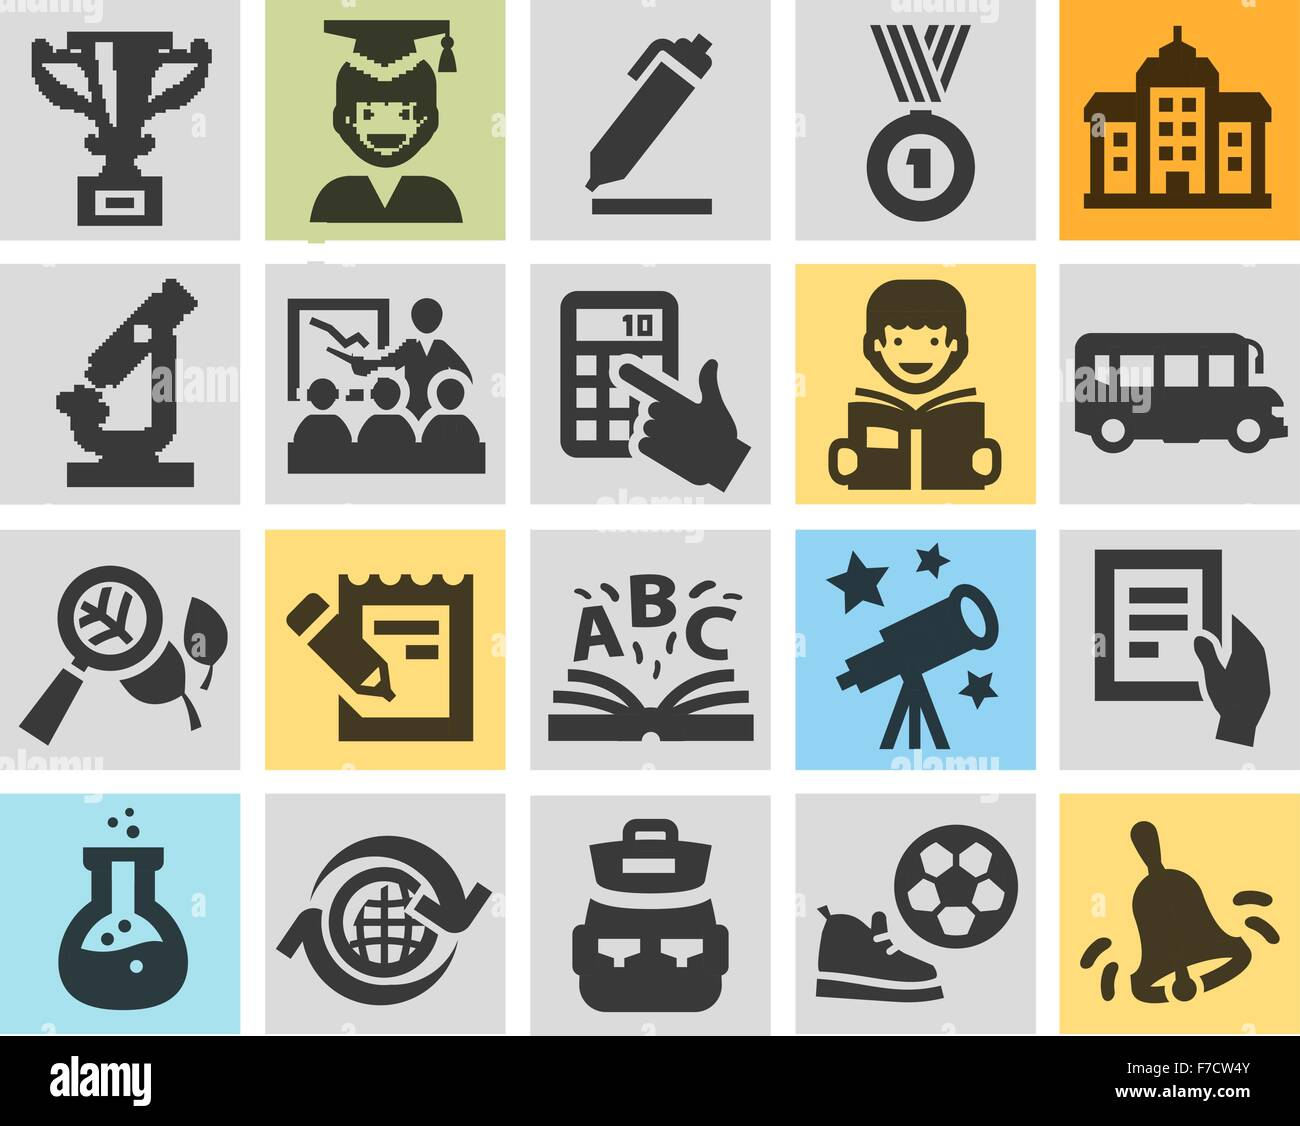 School Education Set Black Icons Signs And Symbols Stock Vector